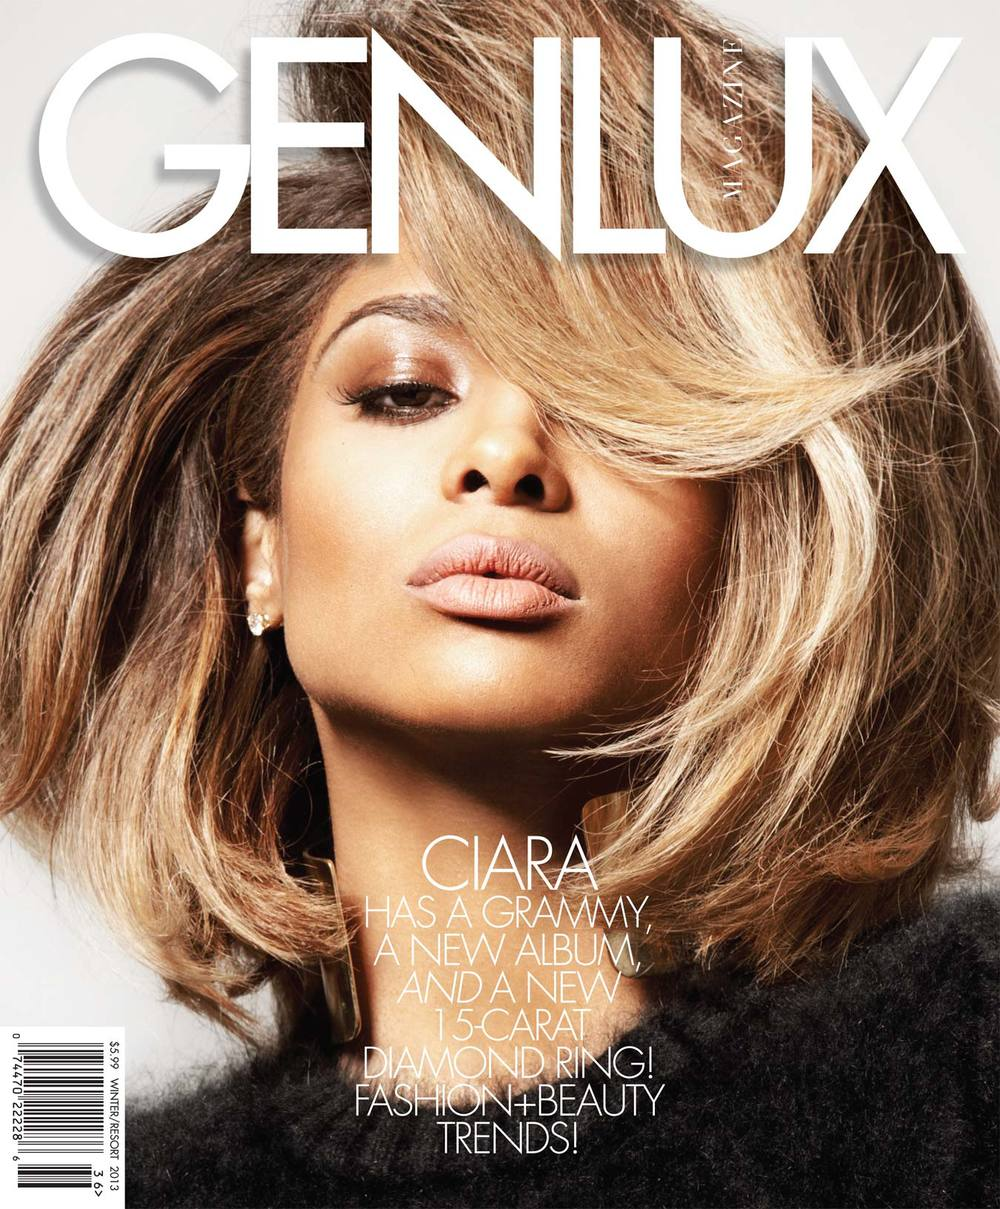 genlux ciara cover - version b